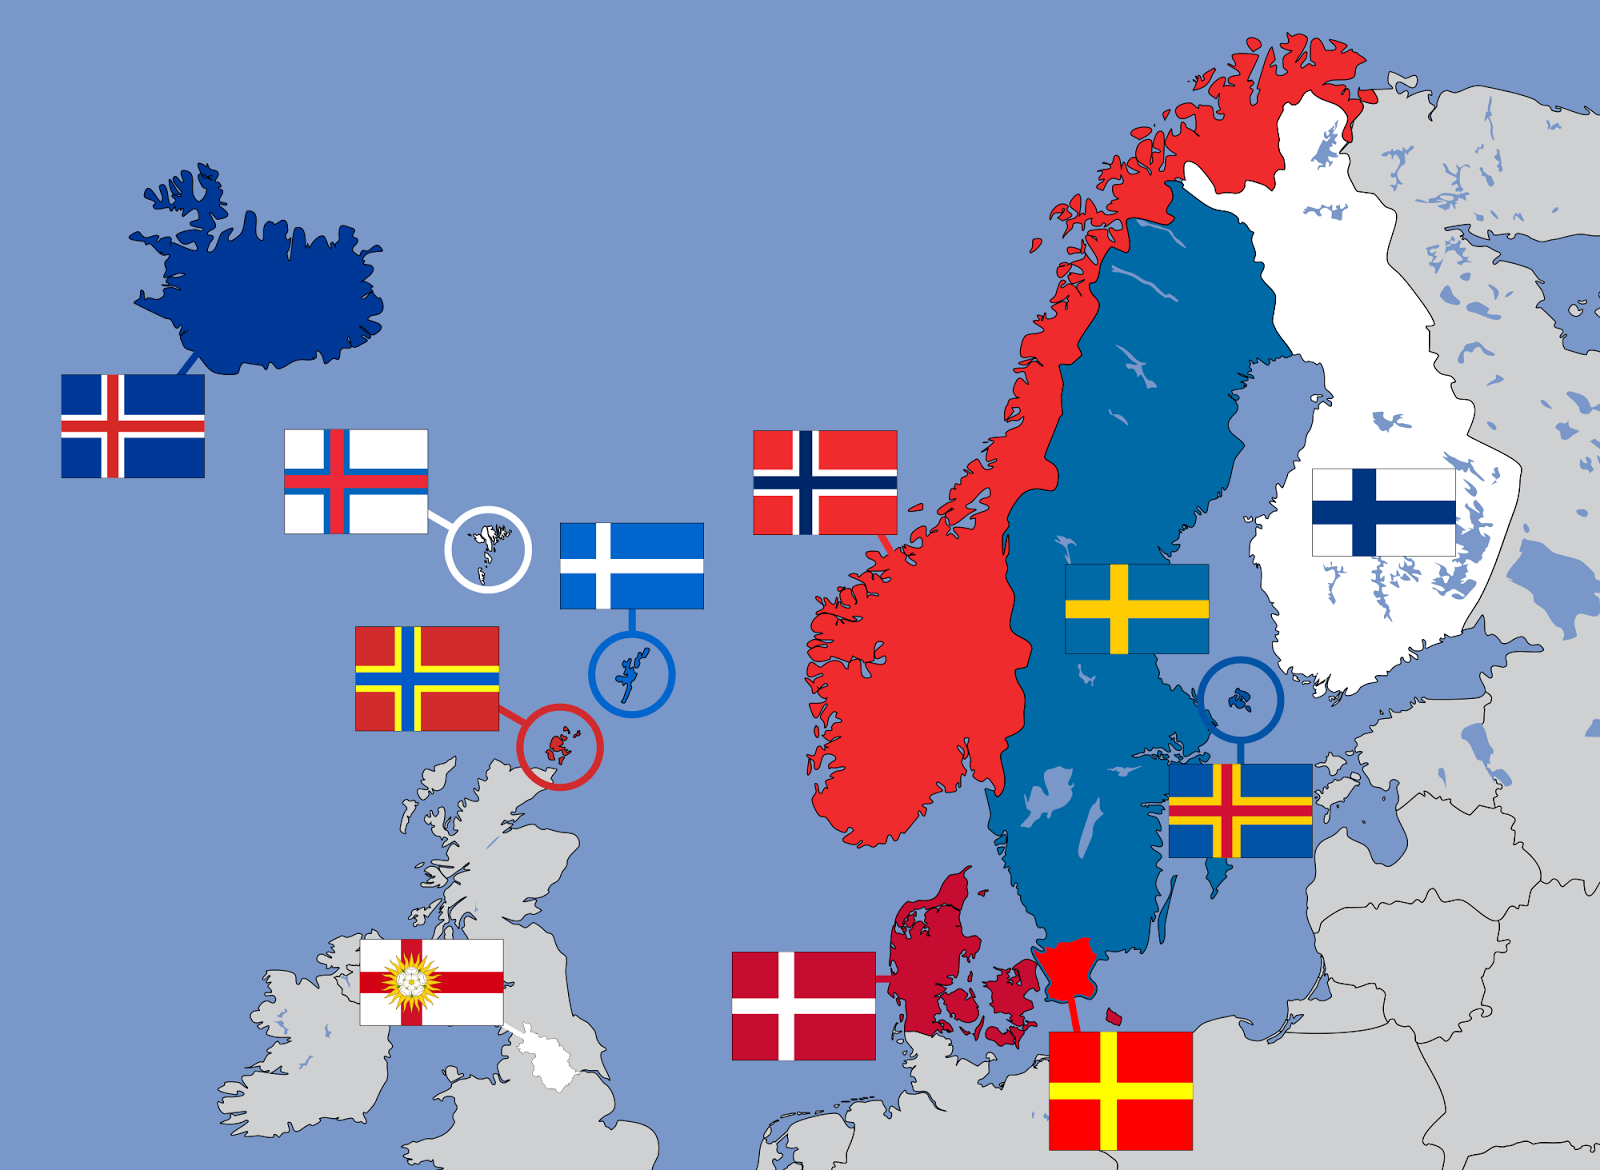 Nordic Cross Flags of Northern Europe